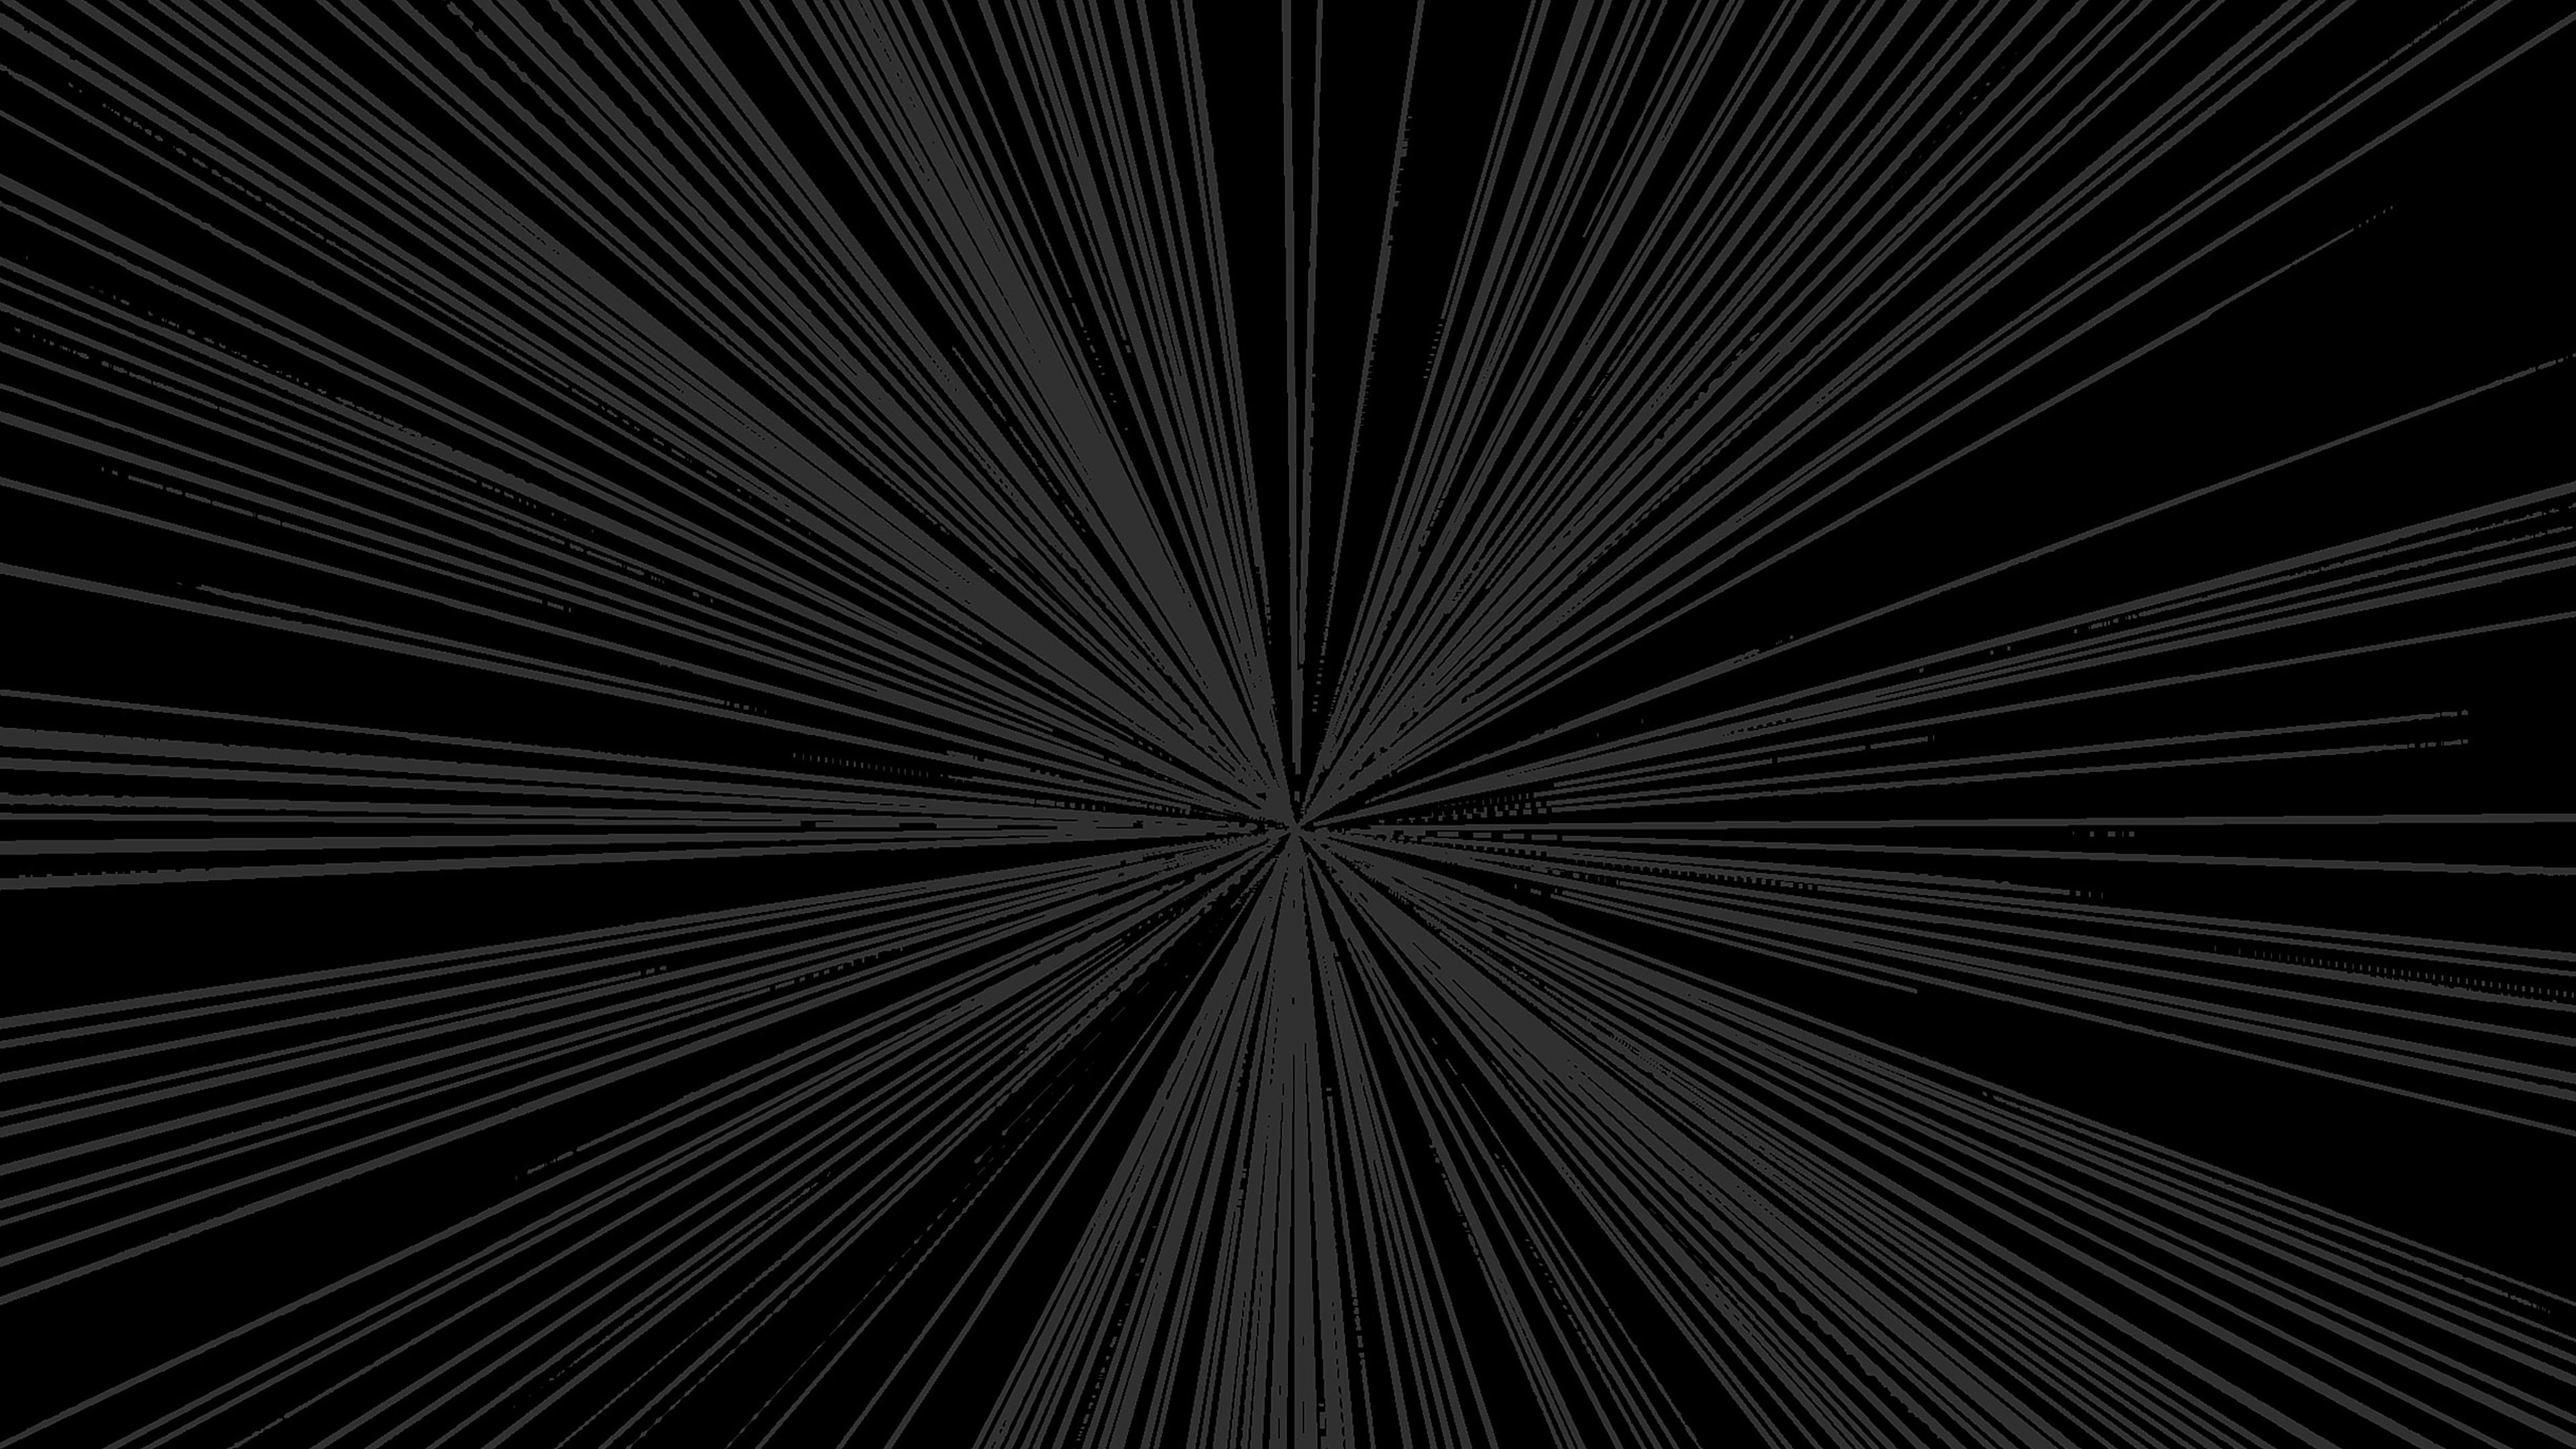 Note 8 Fall Wallpapers Vb00 Wallpaper Action Lines Pattern Black Papers Co